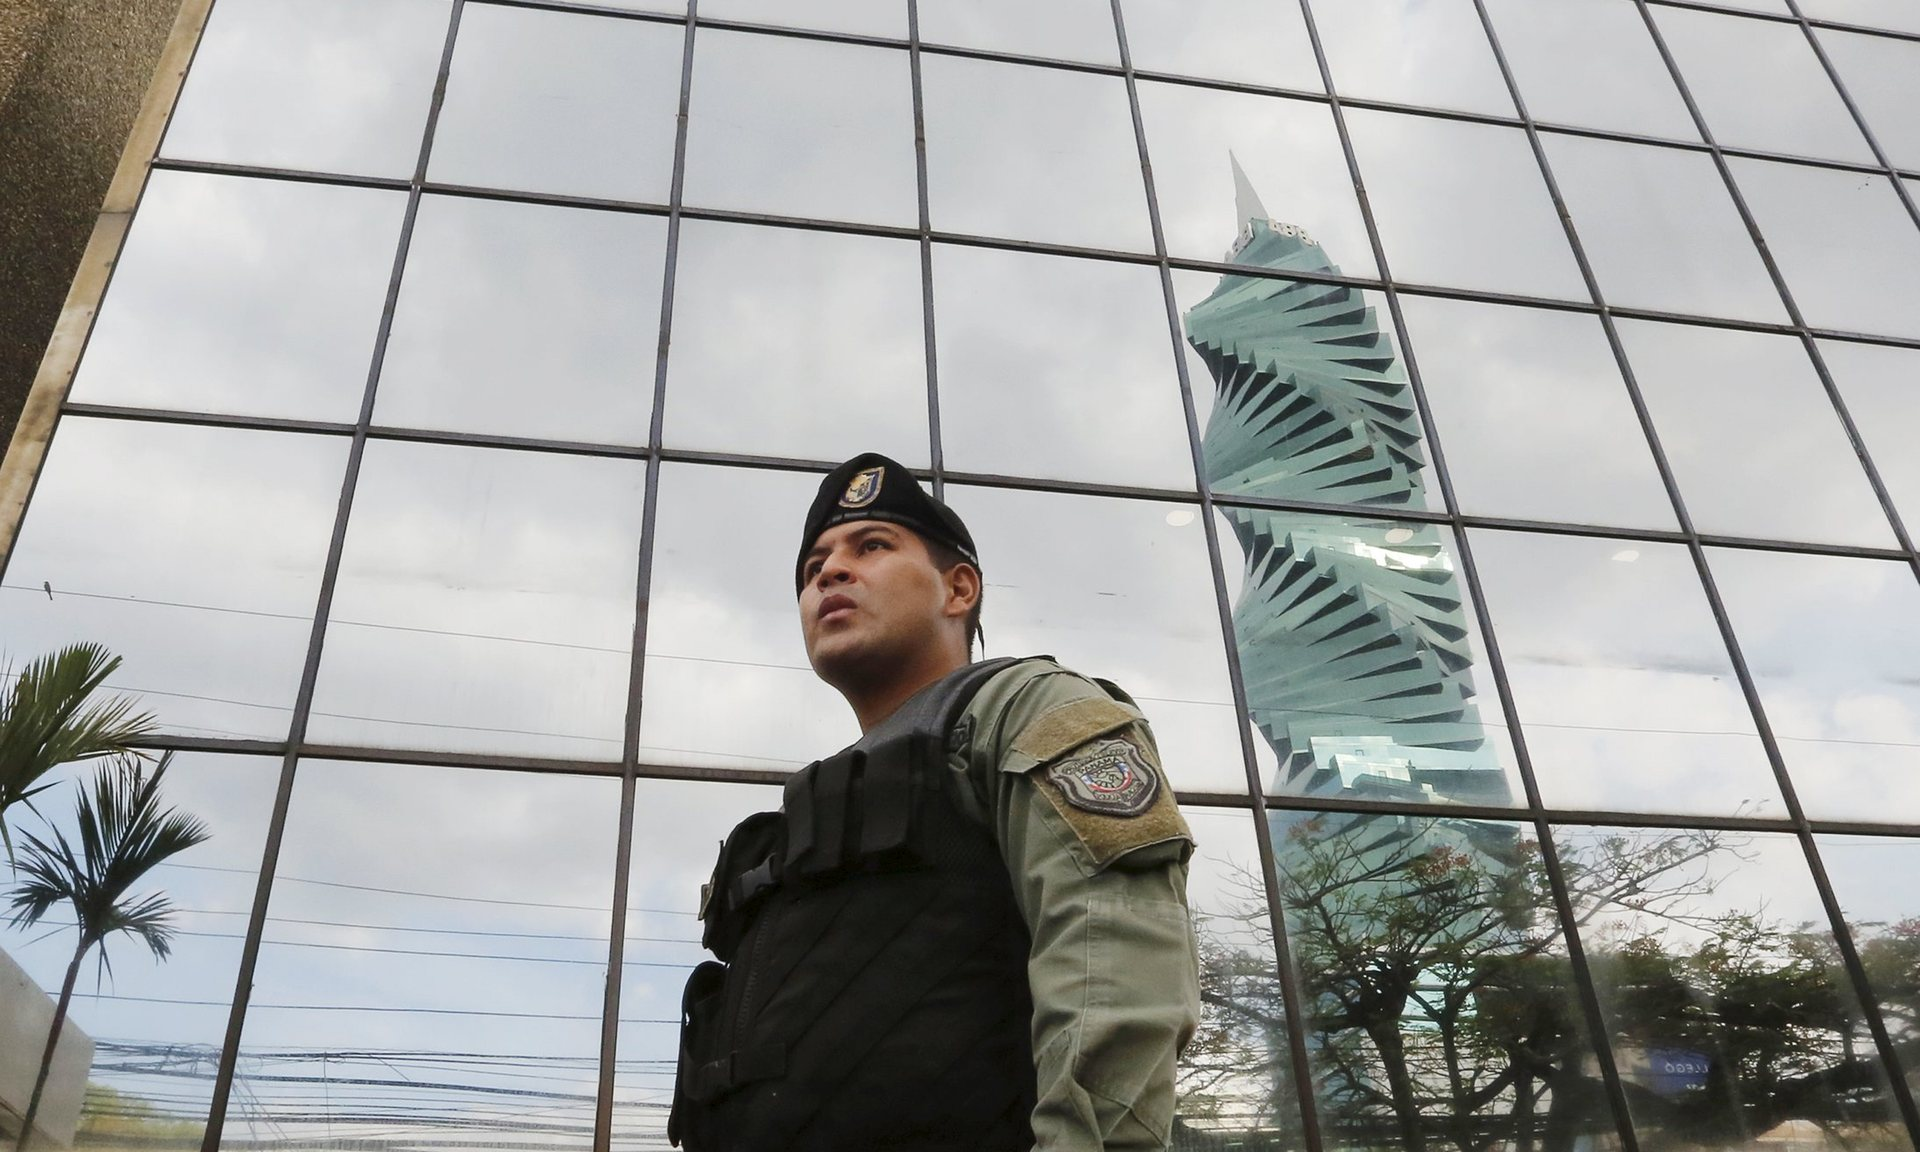 Guard outside the offices of Mossack Fonseca, in Panama. [Reuters]